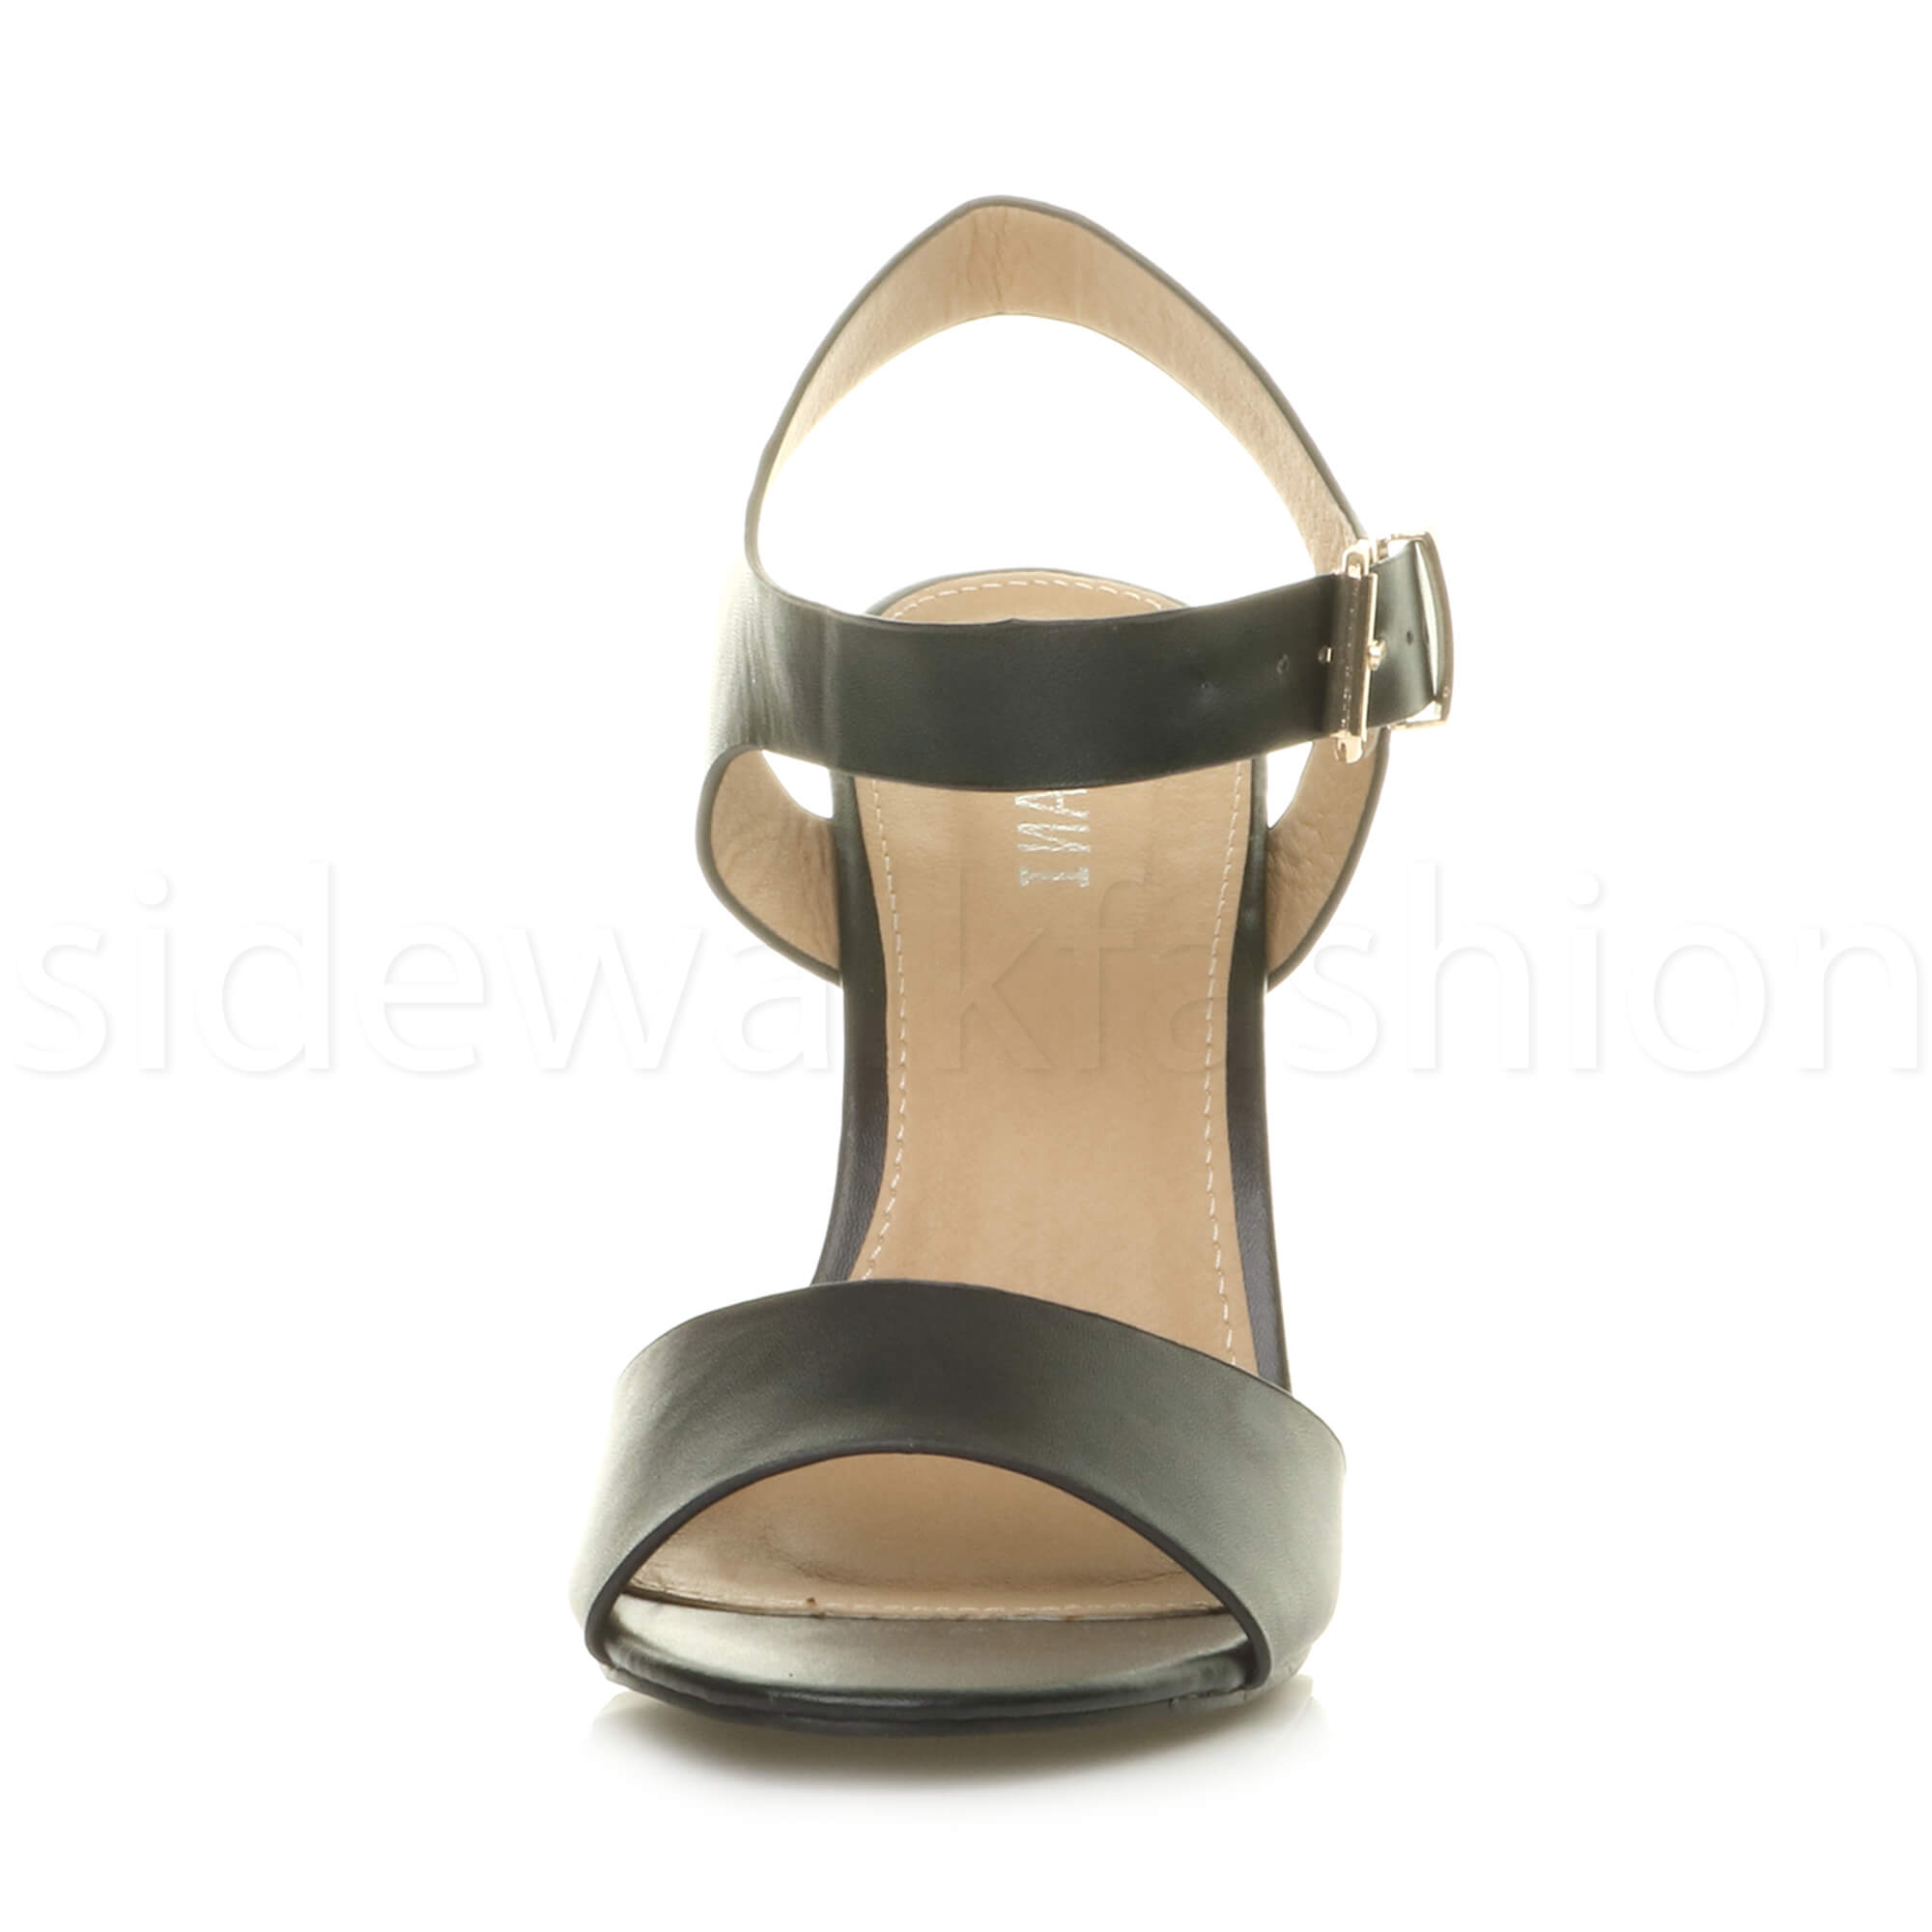 Womens-ladies-chunky-high-heel-buckle-strappy-barely-there-sandals-shoes-size thumbnail 6